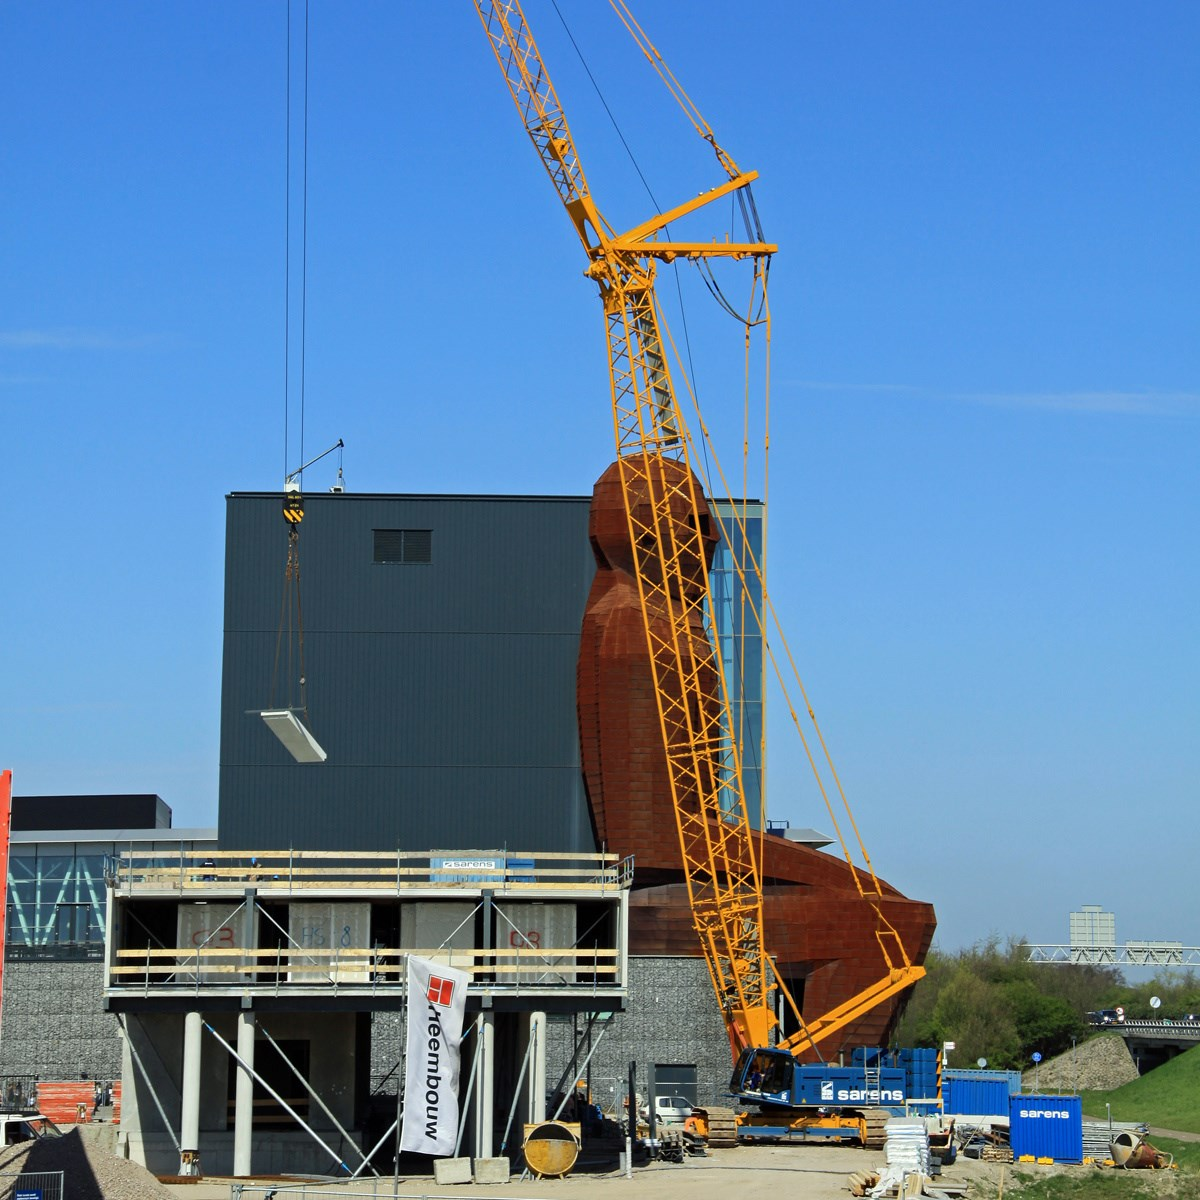 liebherr-LR-1160-lattice-boom-crawler-crane-160-